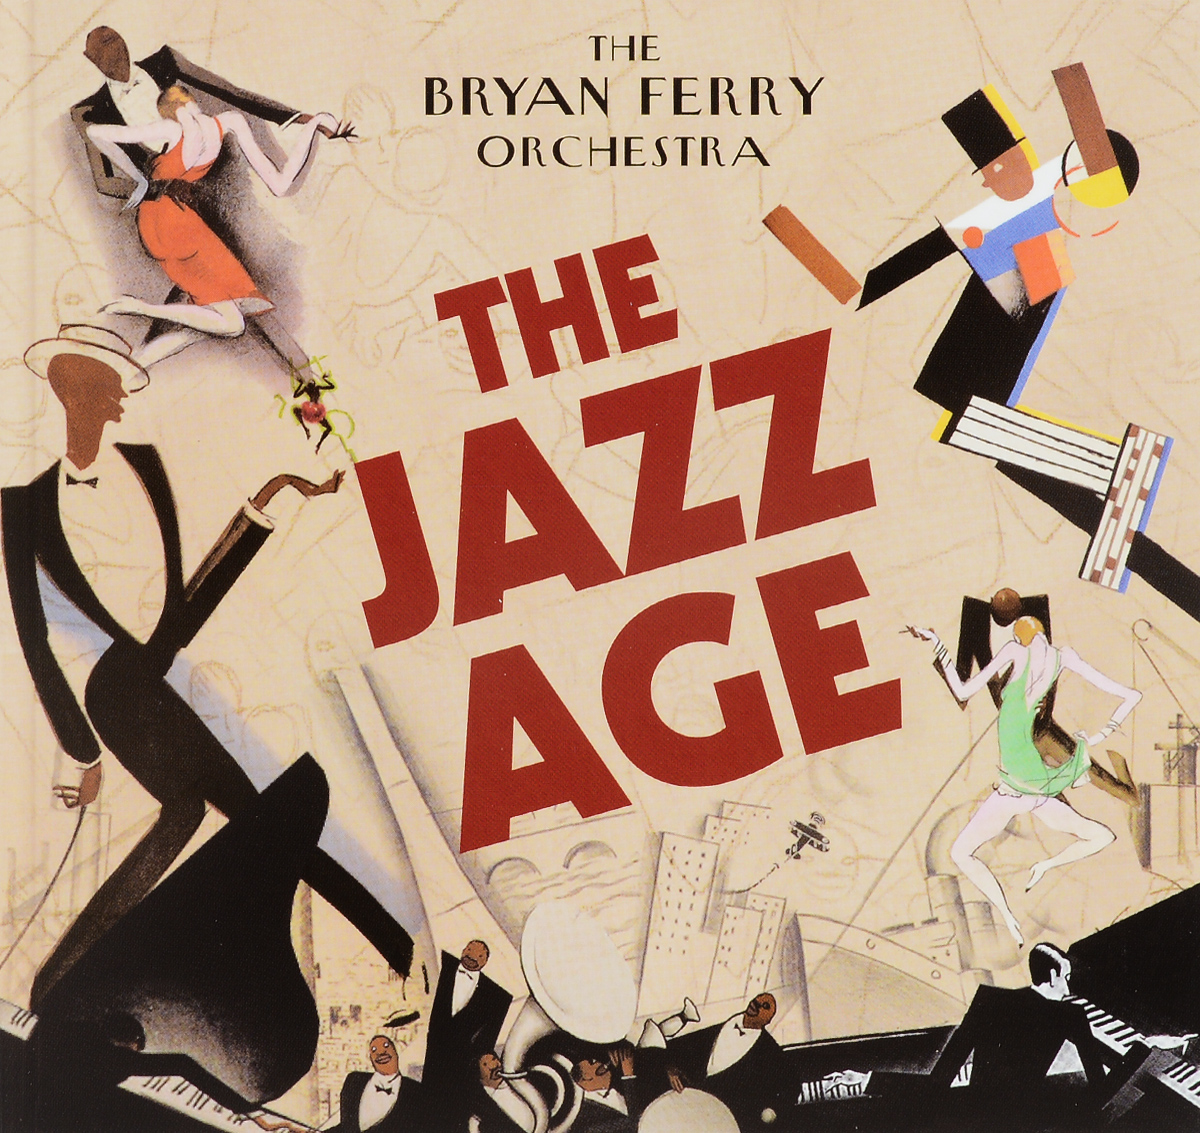 Брайан Ферри,The Bryan Ferry Orchestra The Bryan Ferry Orchestra. The Jazz Age bryan ferry let